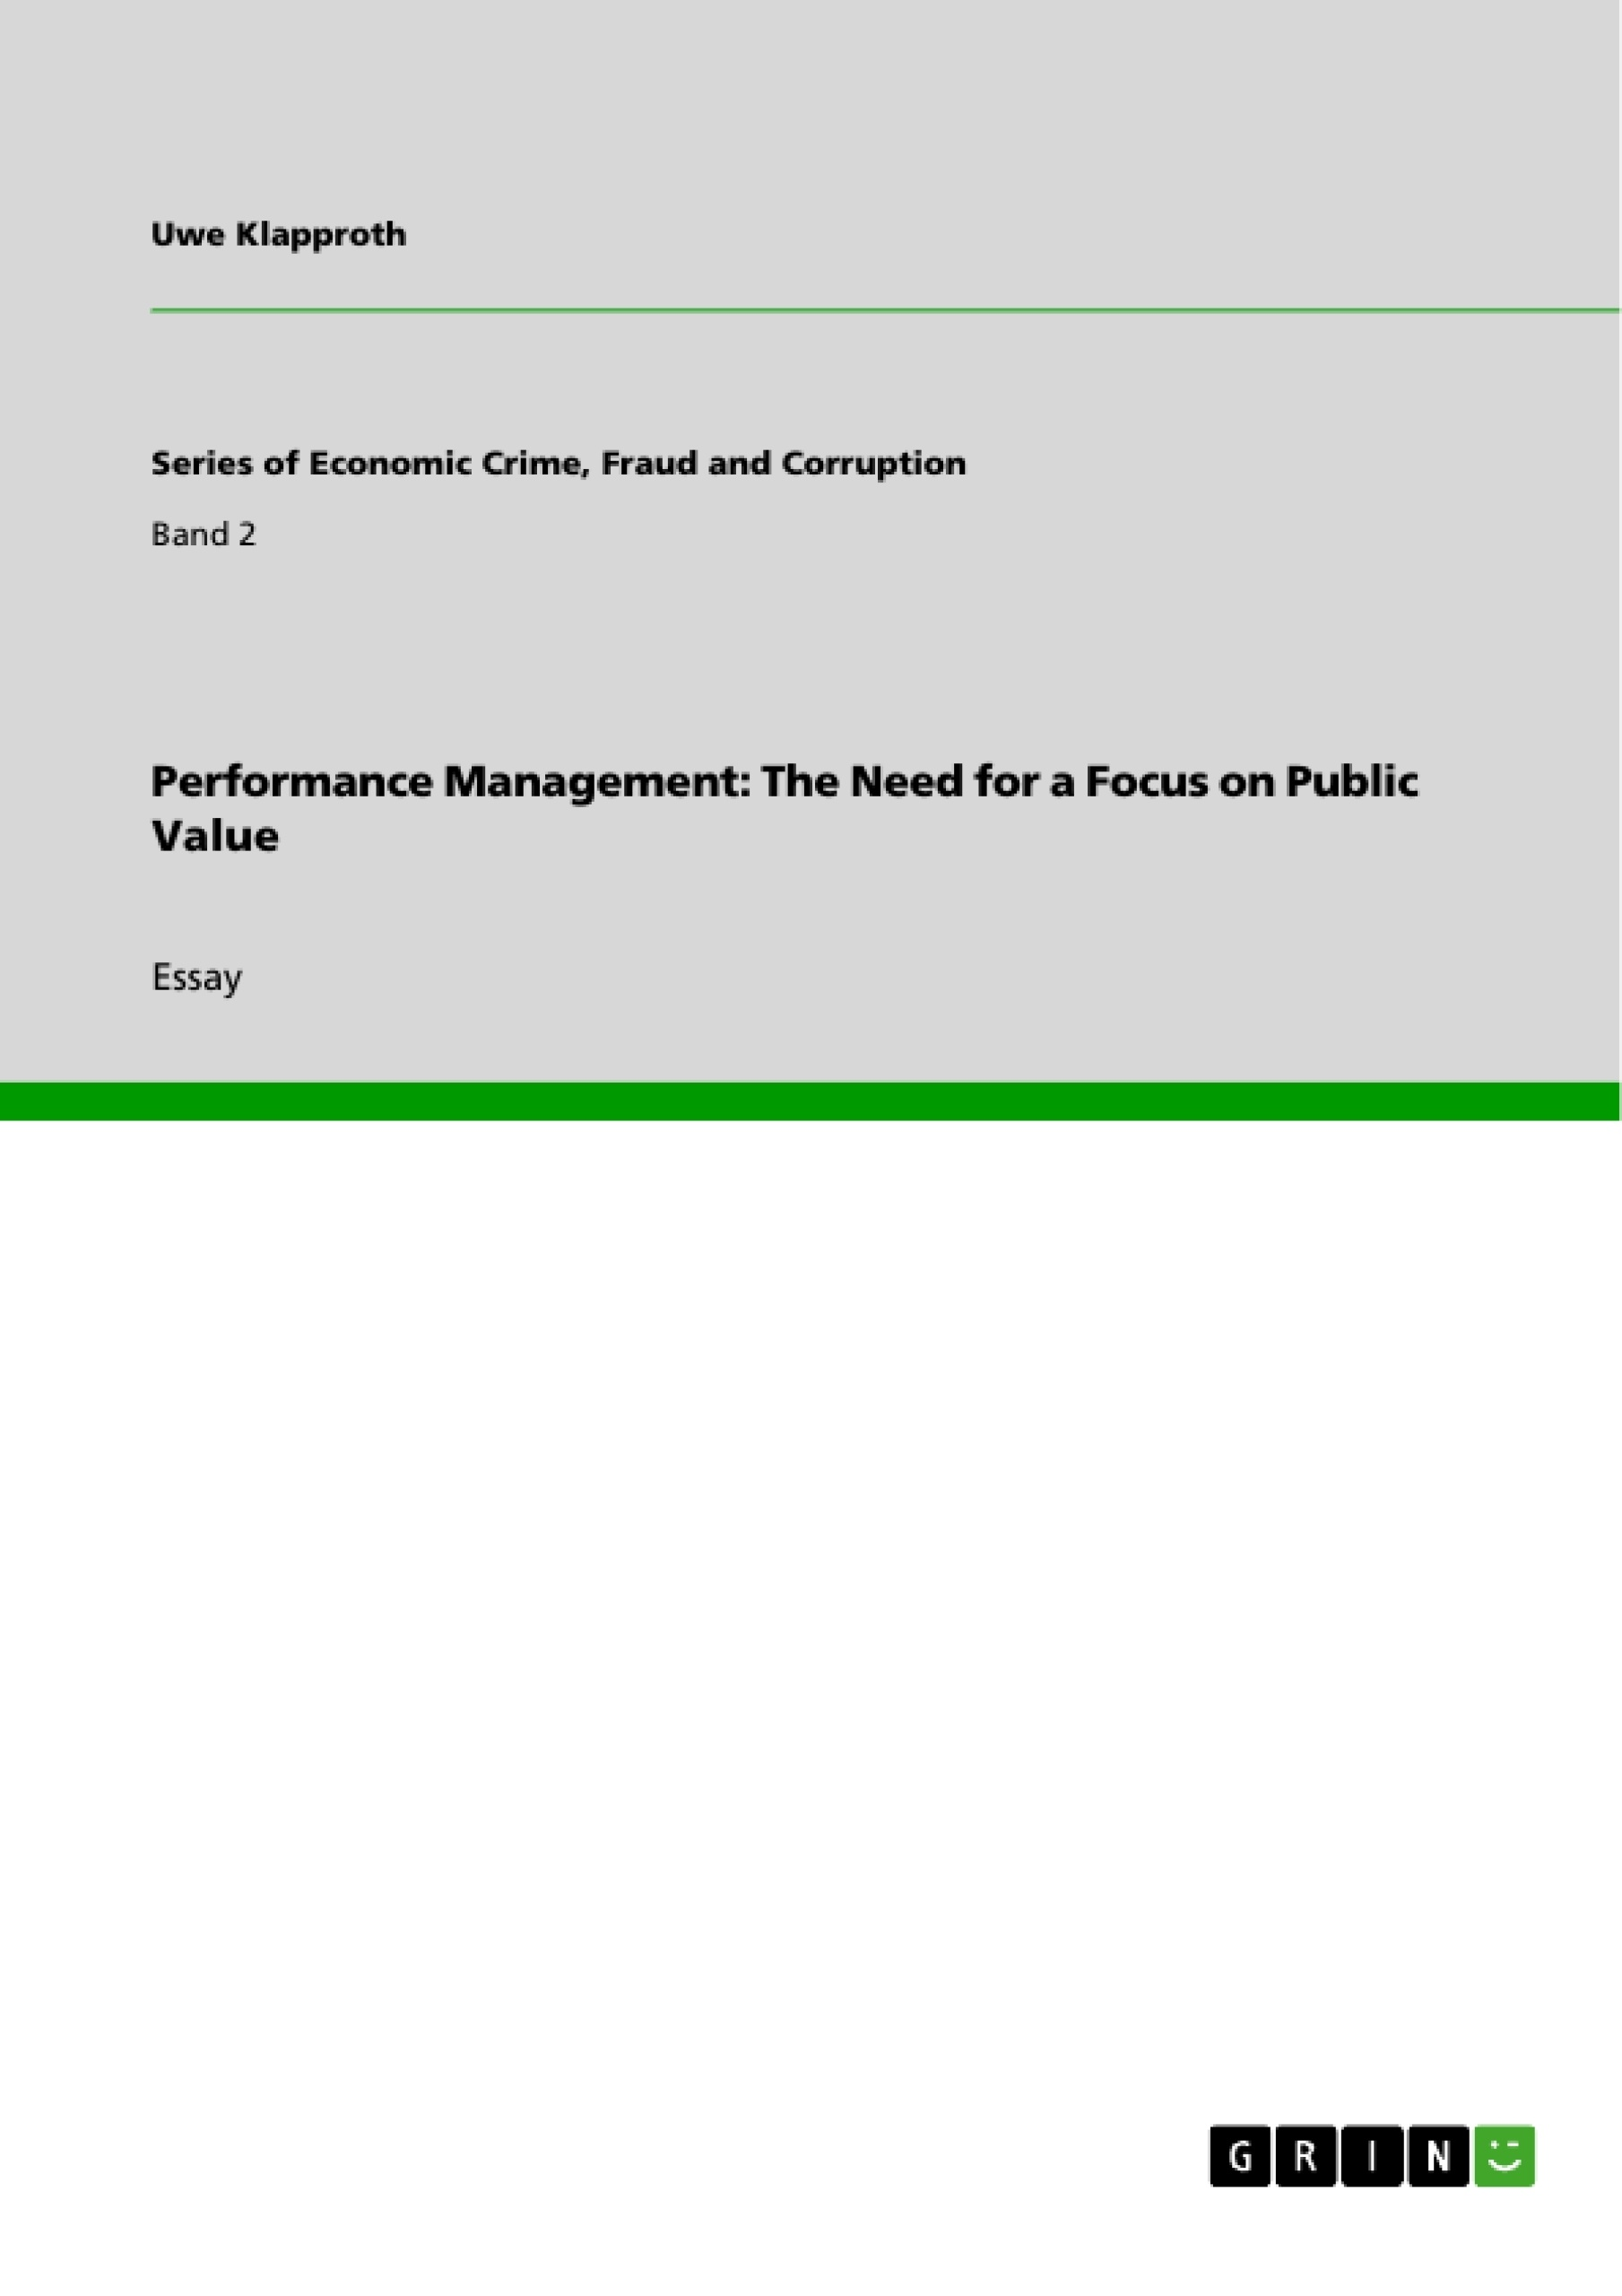 Performance Management The Need For A Focus On Public Value  Upload Your Own Papers Earn Money And Win An Iphone X Essay On How To Start A Business also Need Help Writing A Book  Essay On Healthy Living